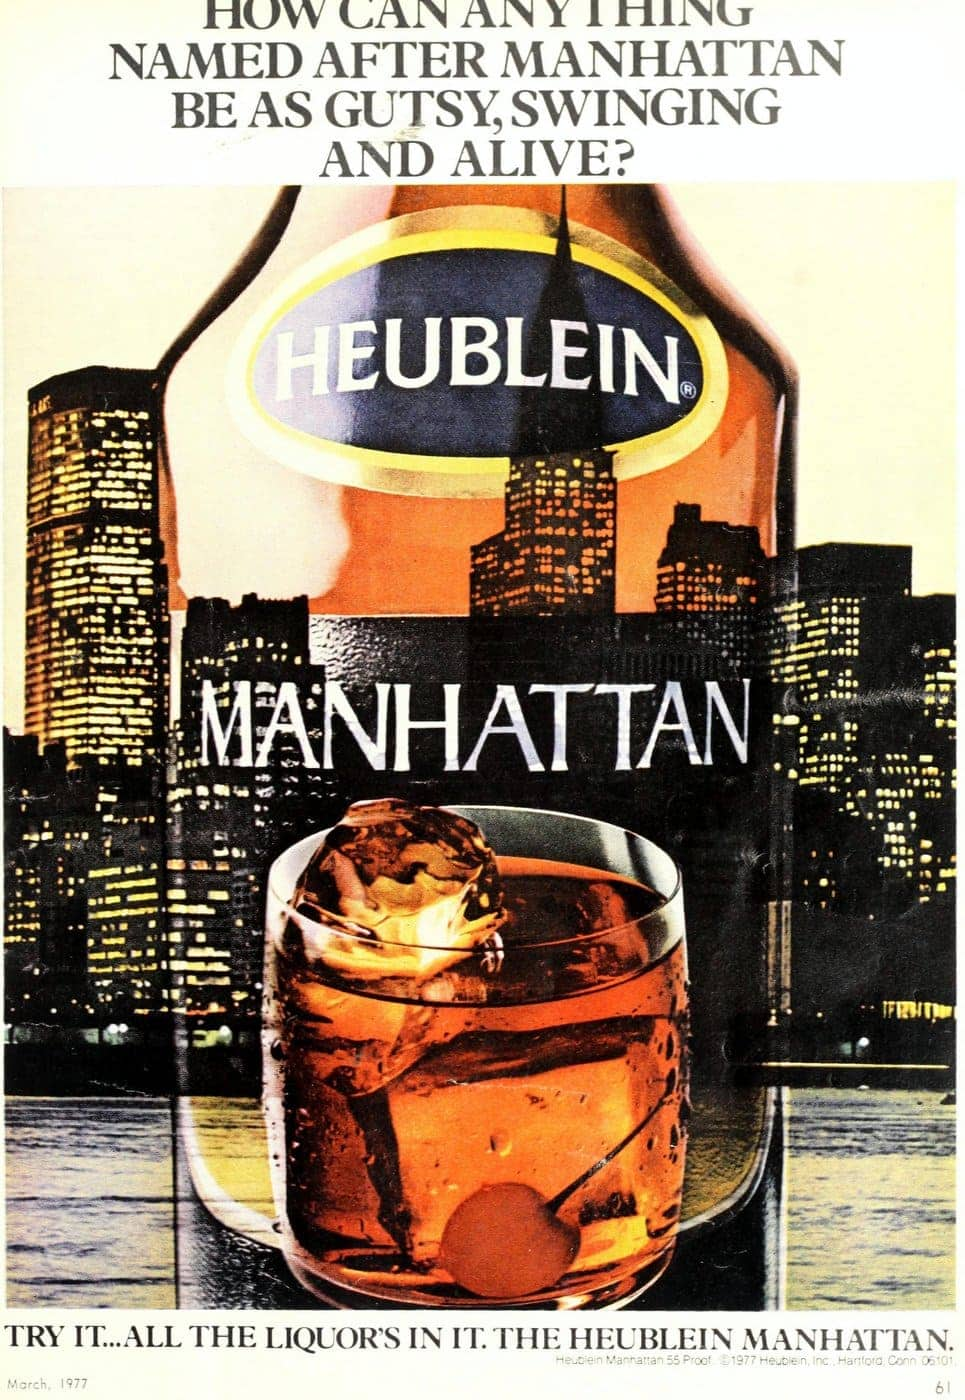 Heublein Manhattan drink mix (1977)